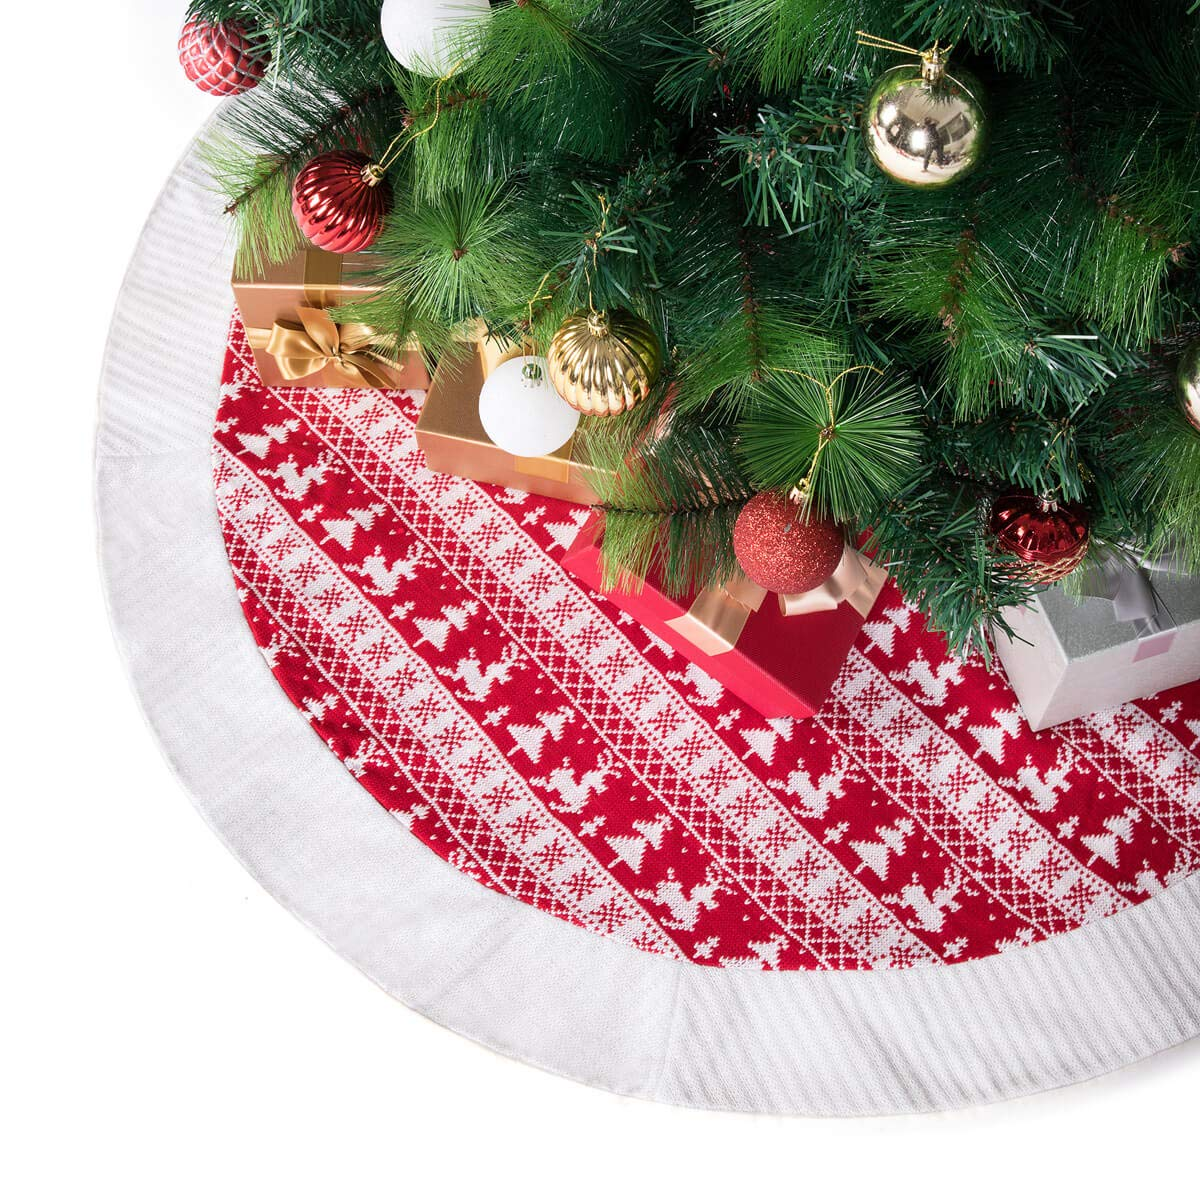 Beige /& Red Edge ARCCI 42 Burlap Christmas Tree Skirt Classic Holiday Decorations Double Layers Xmas Tree Ornaments with Santa Claus /& Snowflake Pattern